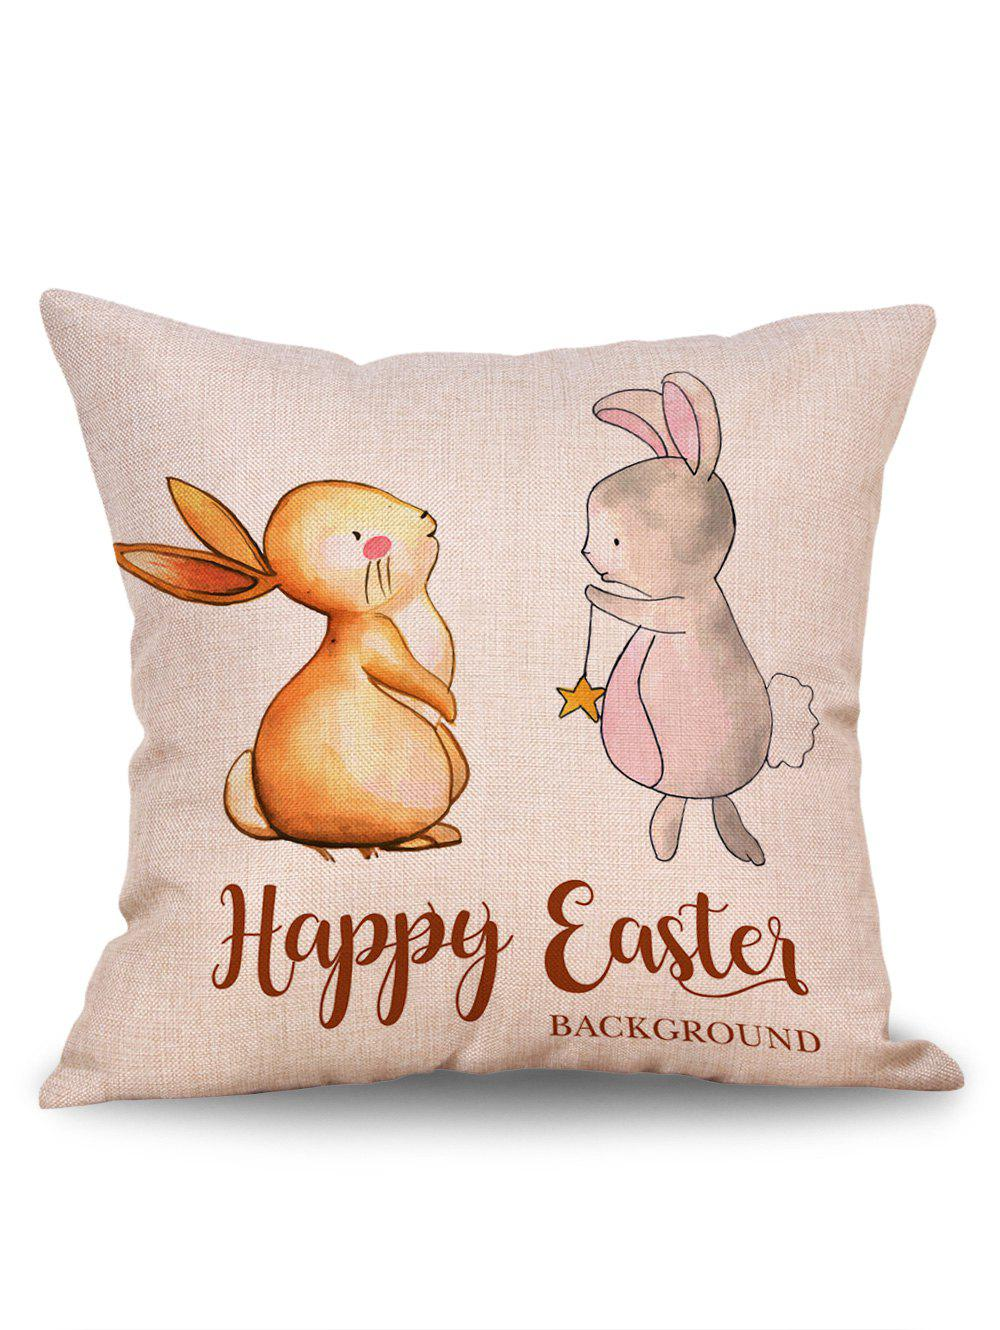 Happy Easter Bunny Lovers Print Decorative Pillow Cover - PINK W18 INCH * L18 INCH